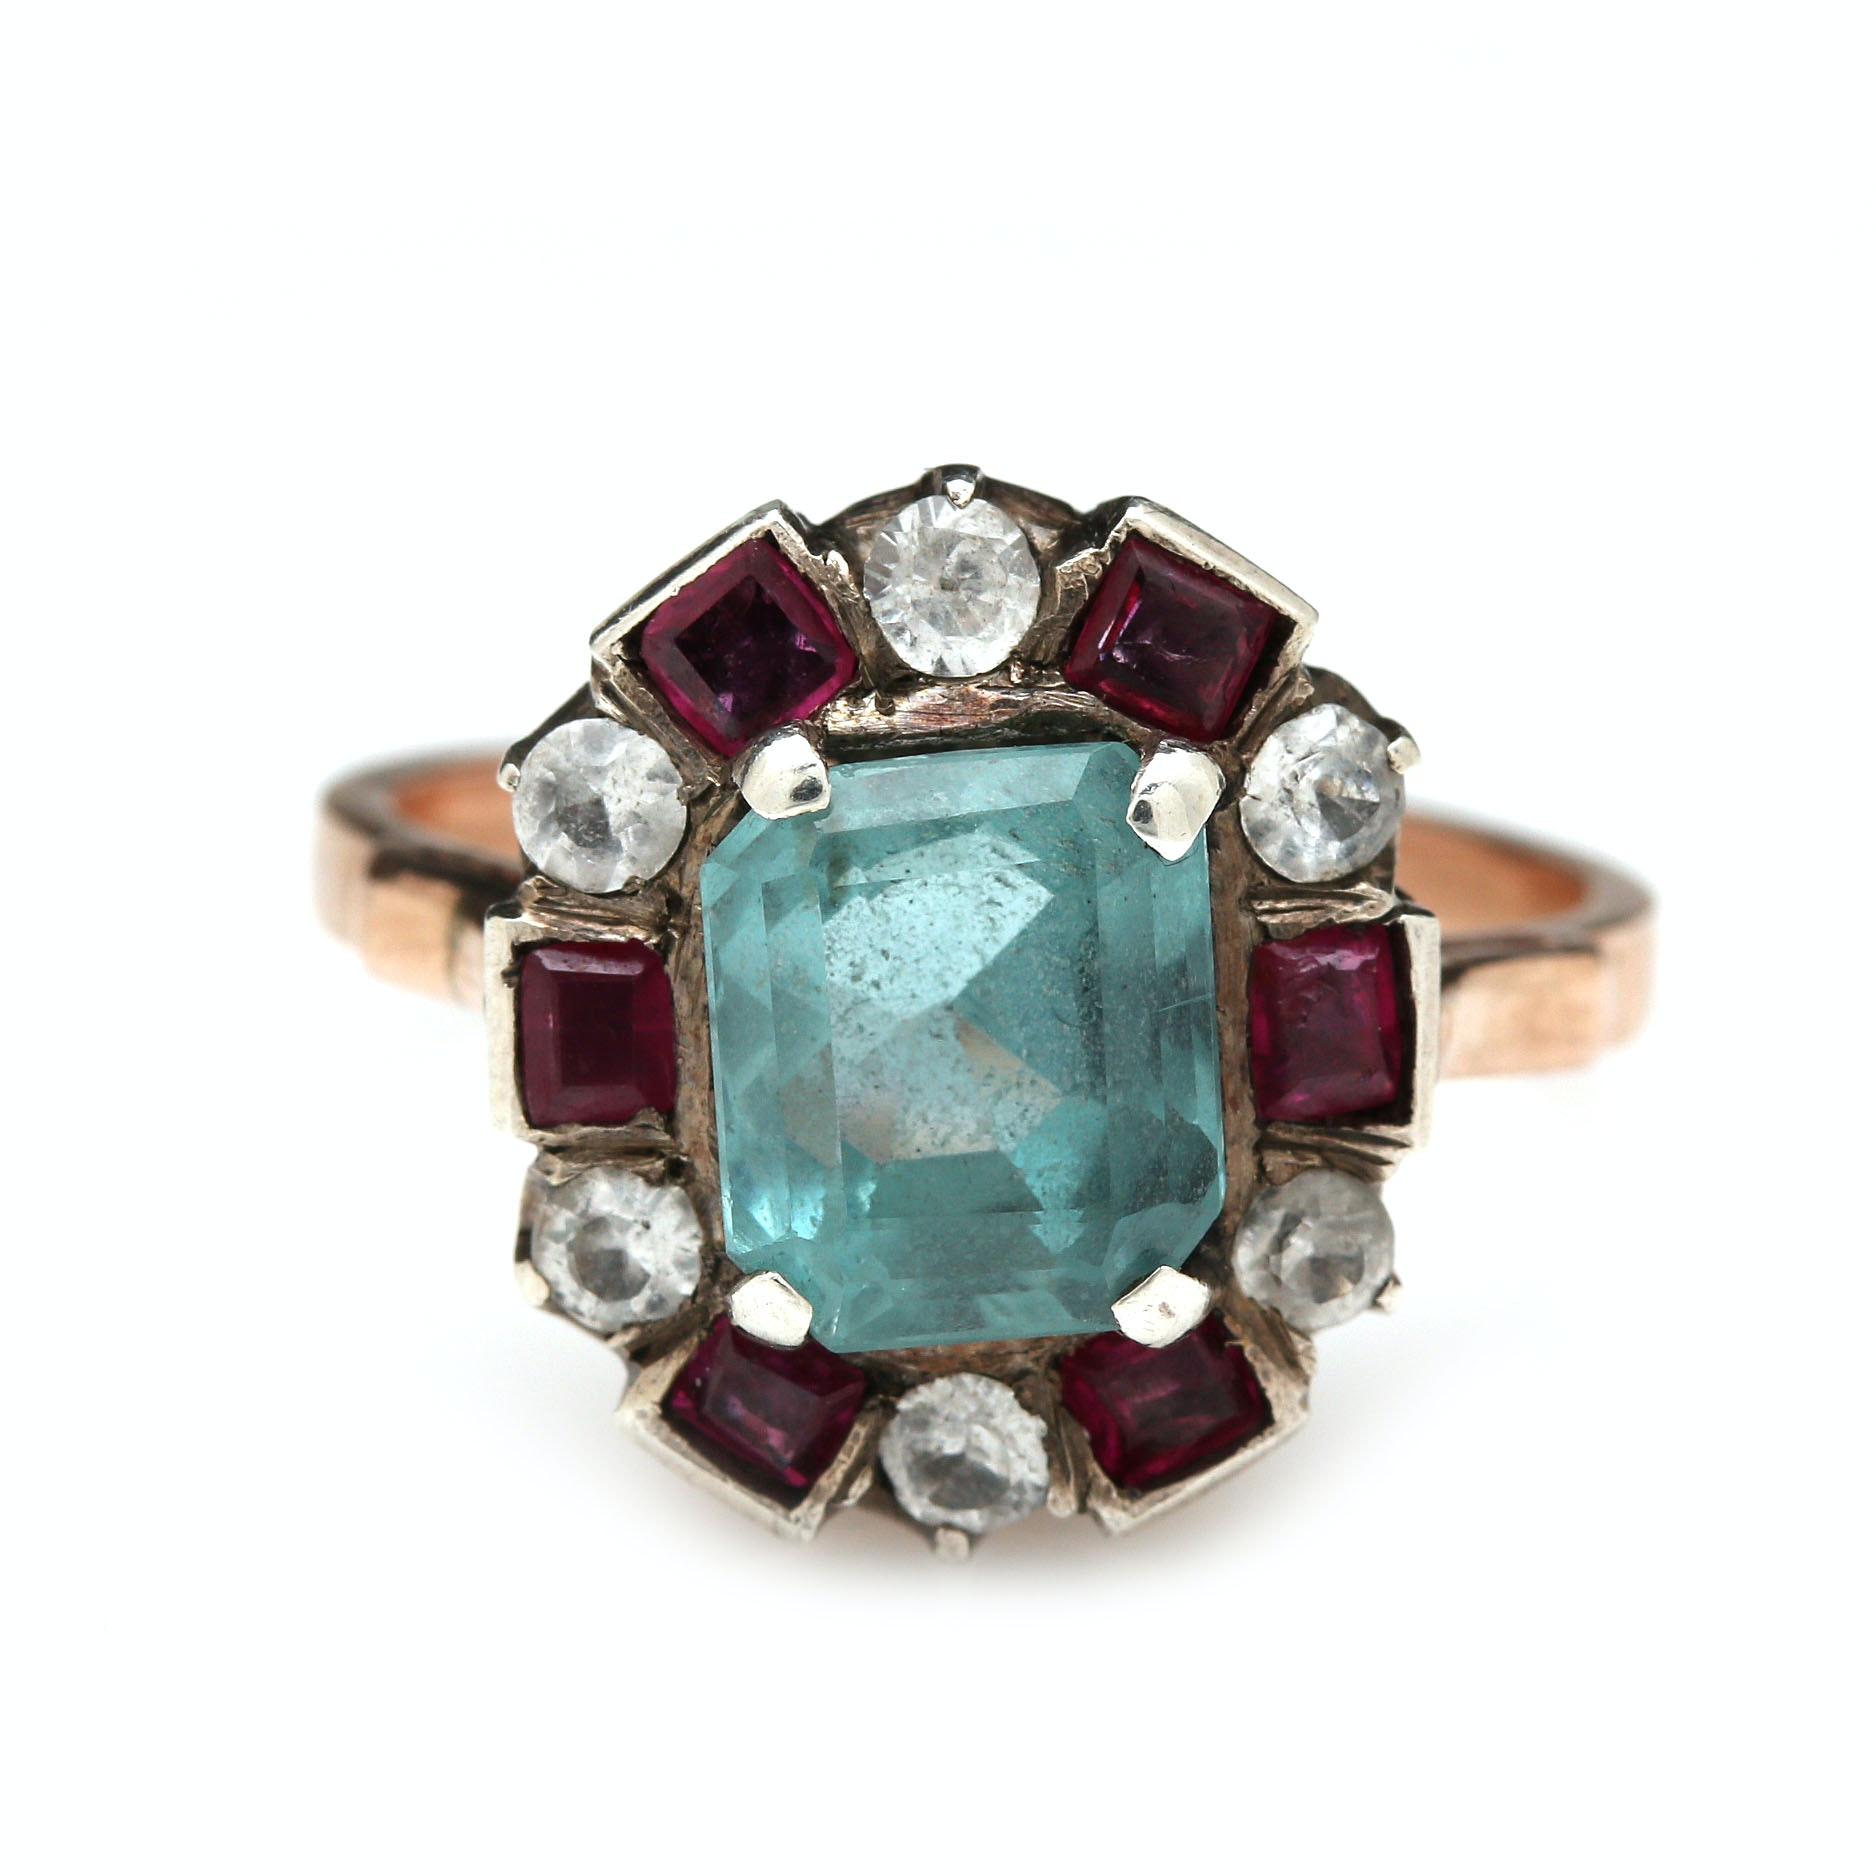 Vintage 10K Yellow Gold 2.16 CT Aquamarine, Sapphire and Ruby Ring